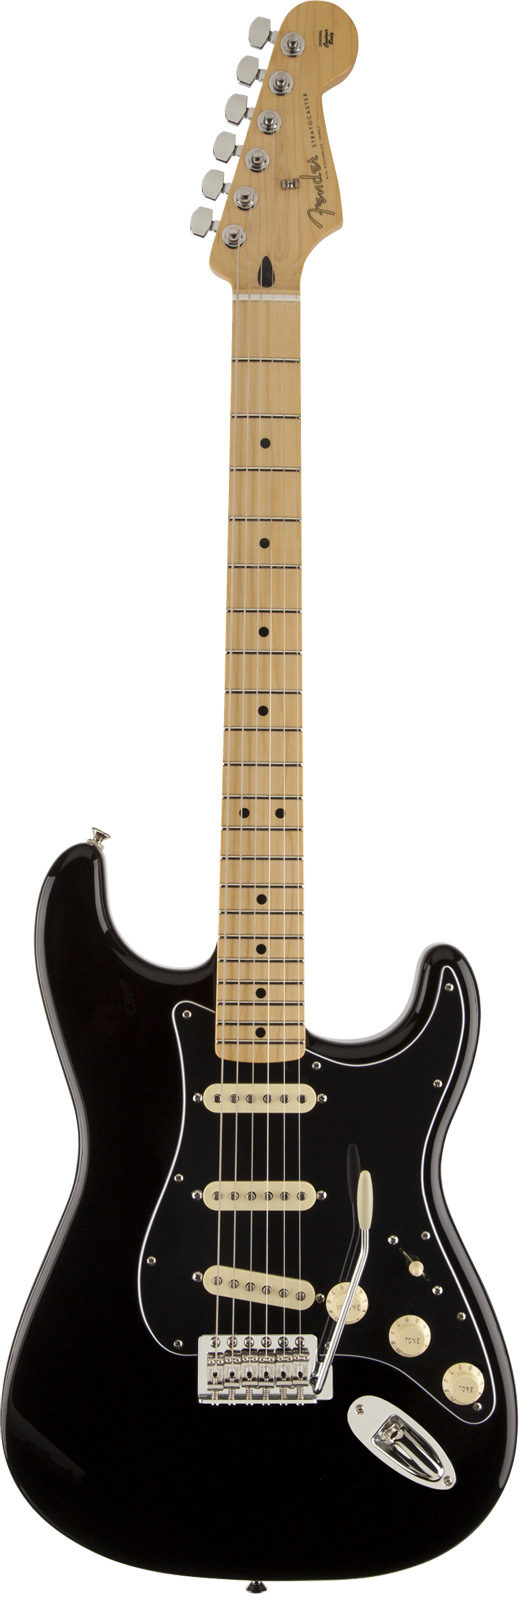 Fender Stratocaster Mexican Black Mn